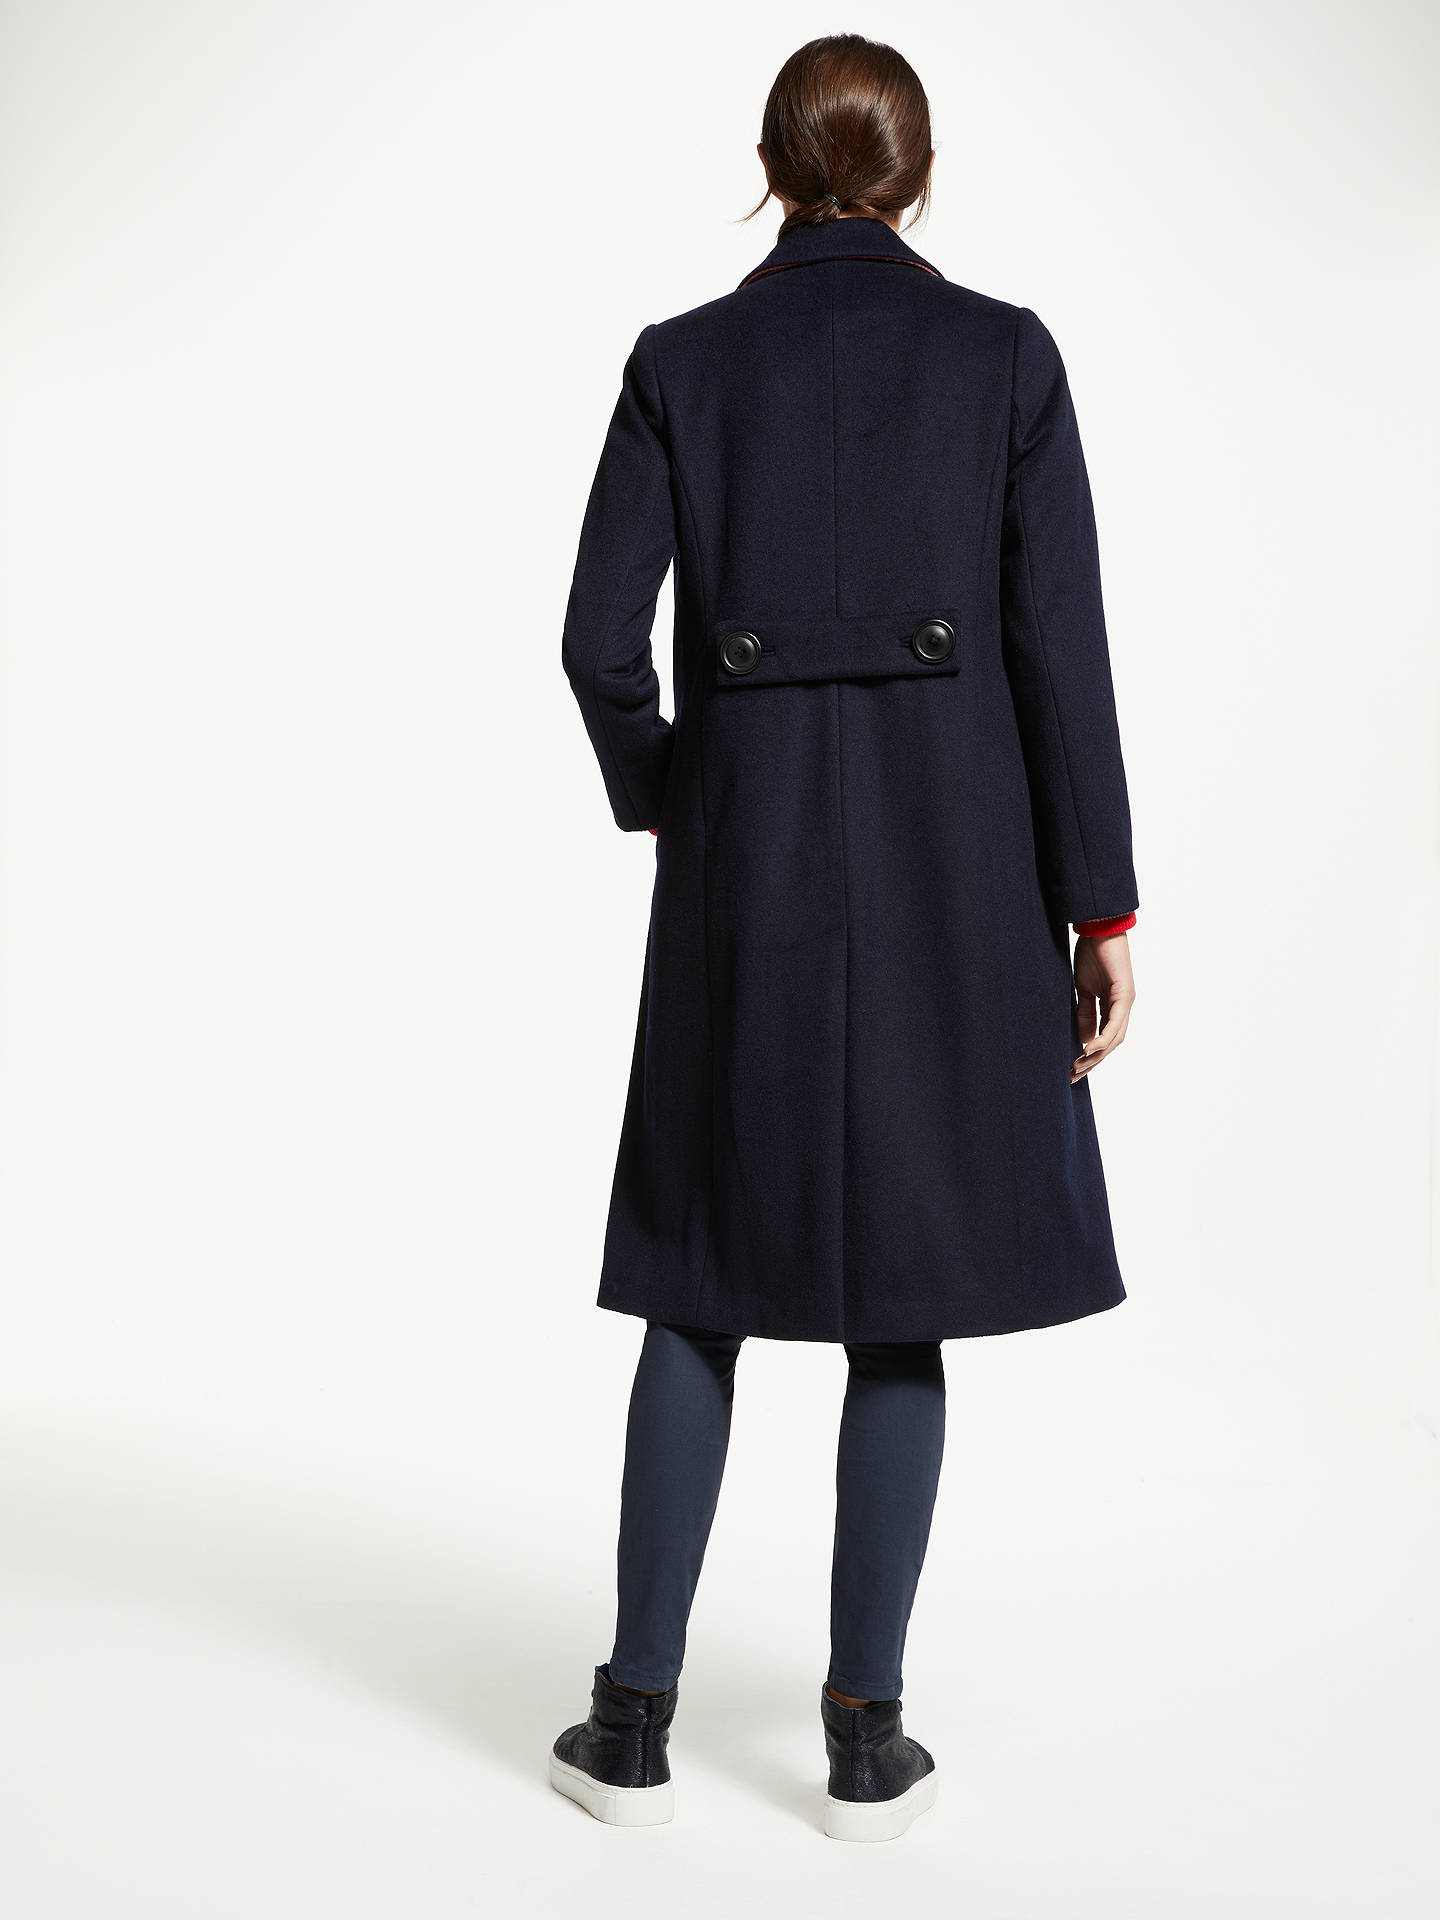 BuyBoden Conwy Coat, Navy, 8 Online at johnlewis.com